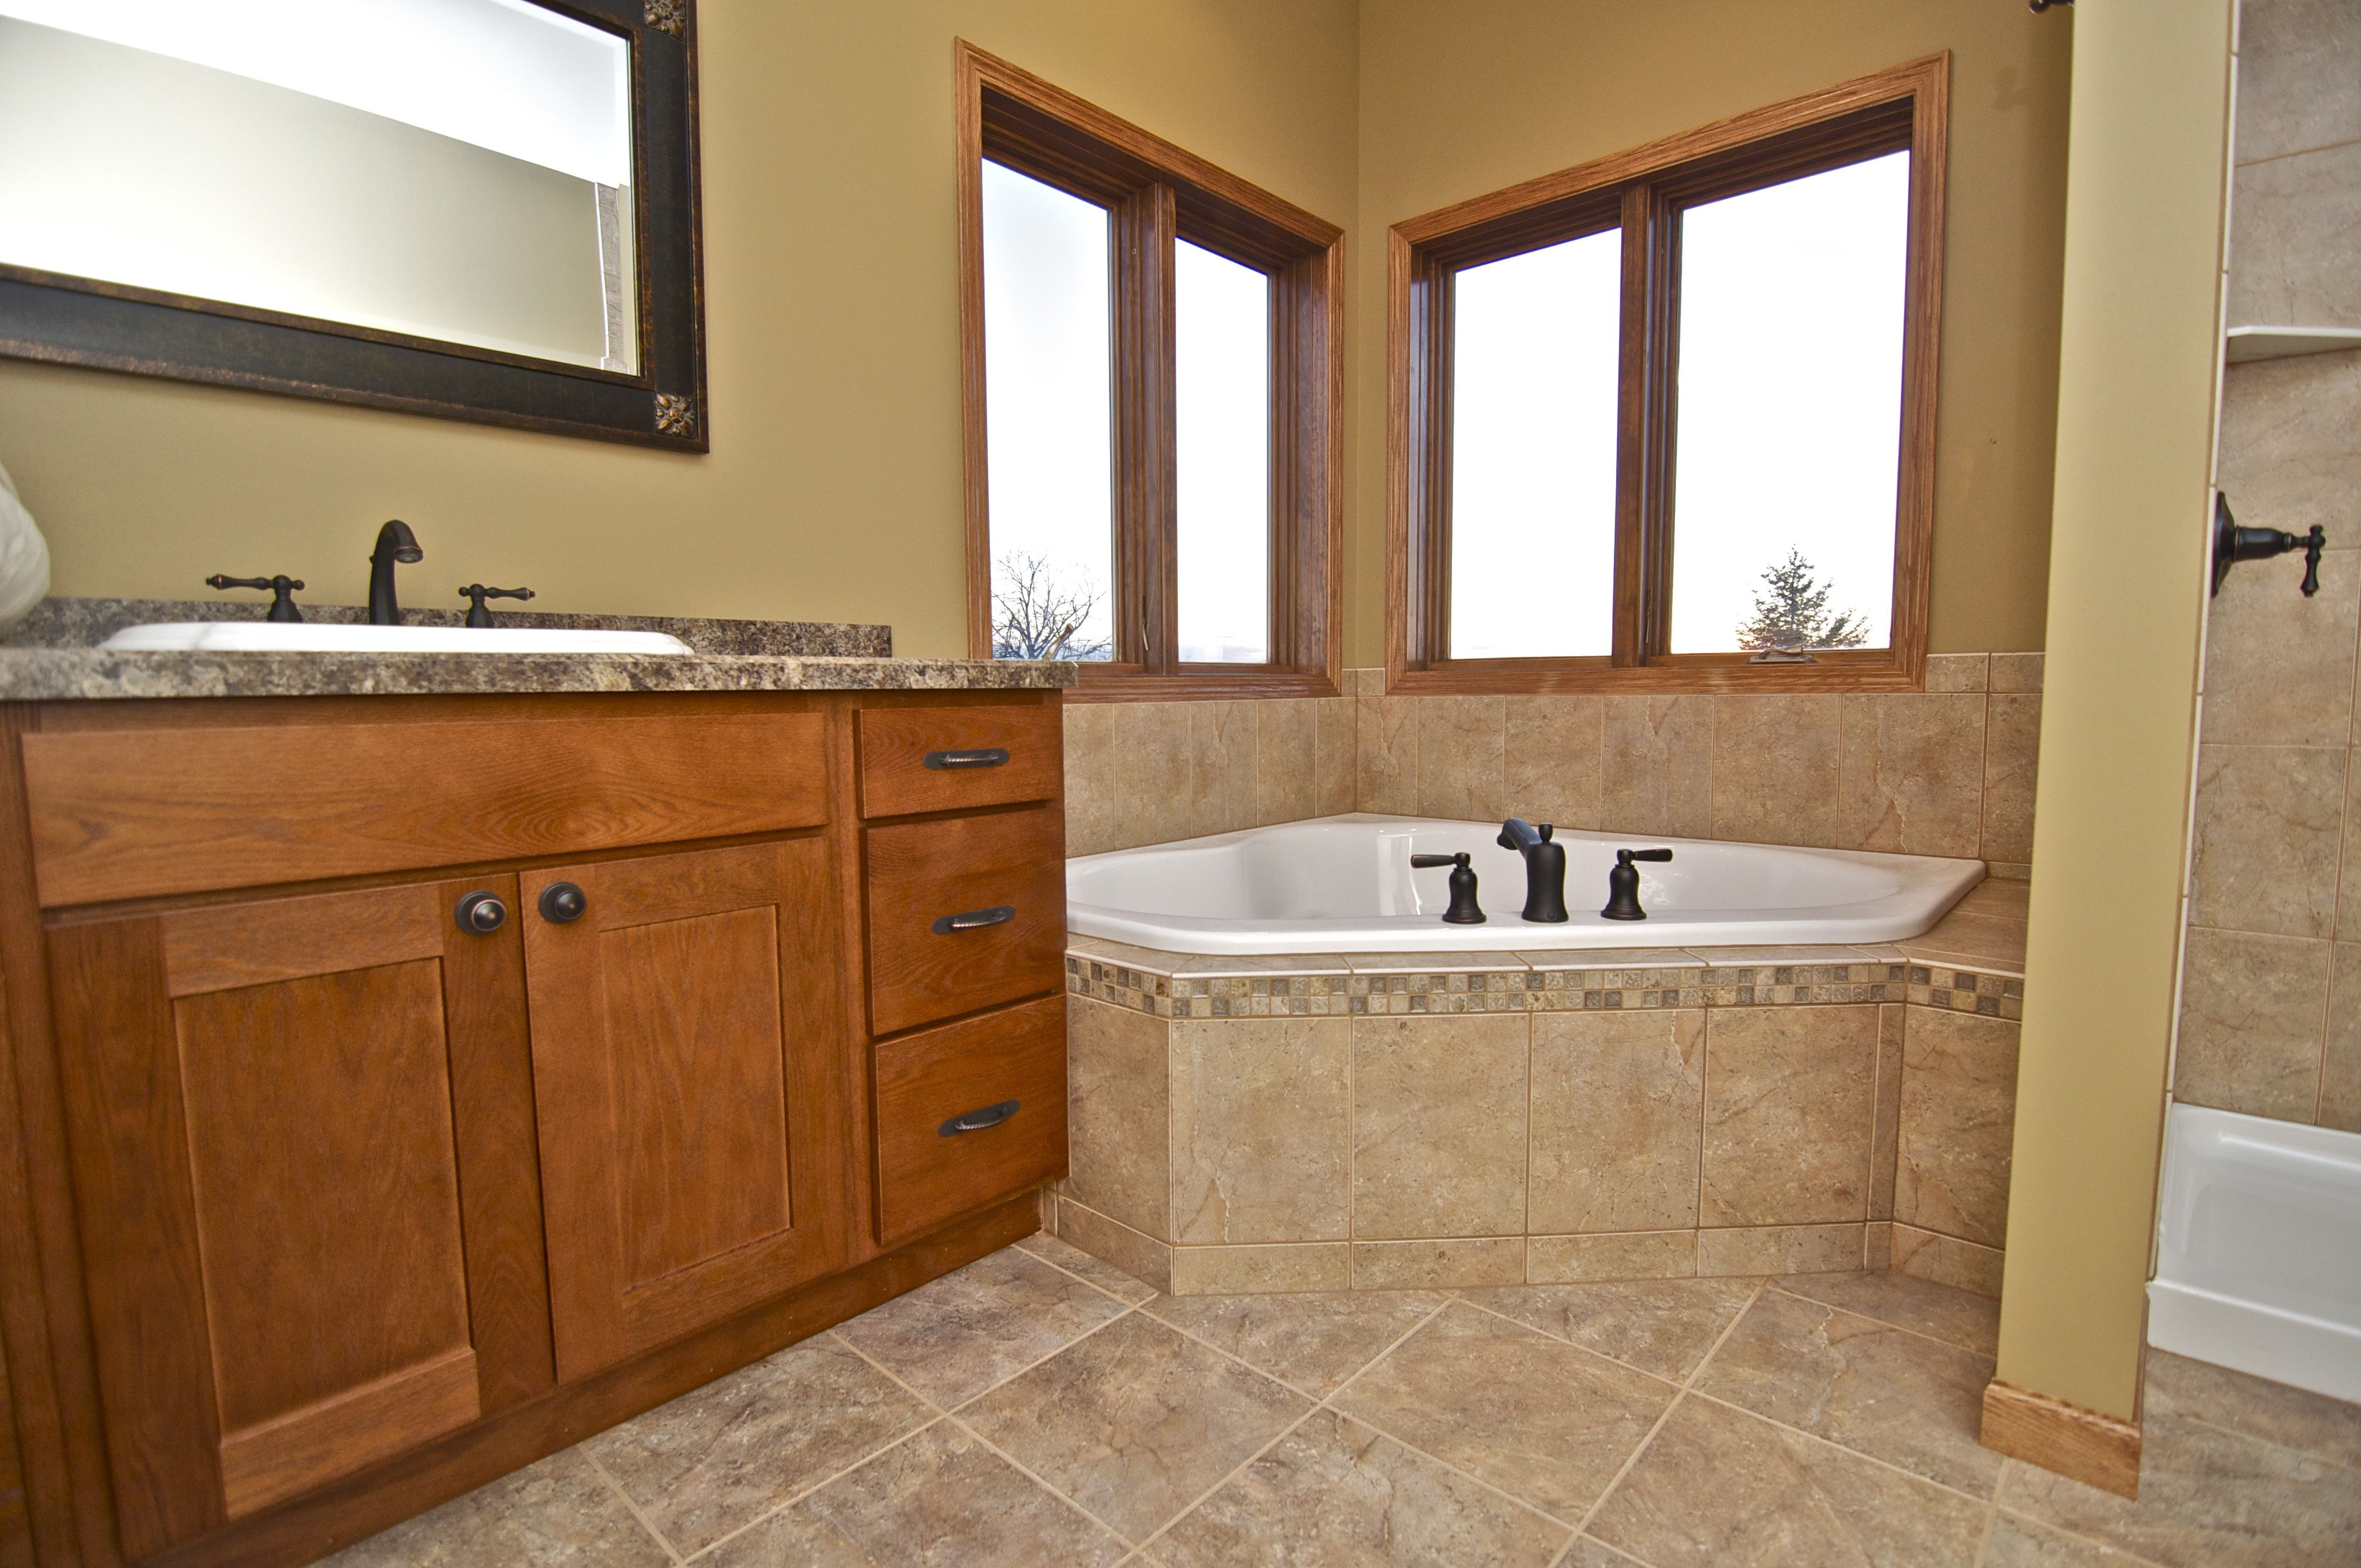 The Bathroom: shower, bathtub and sink along with 2 windows in the corner